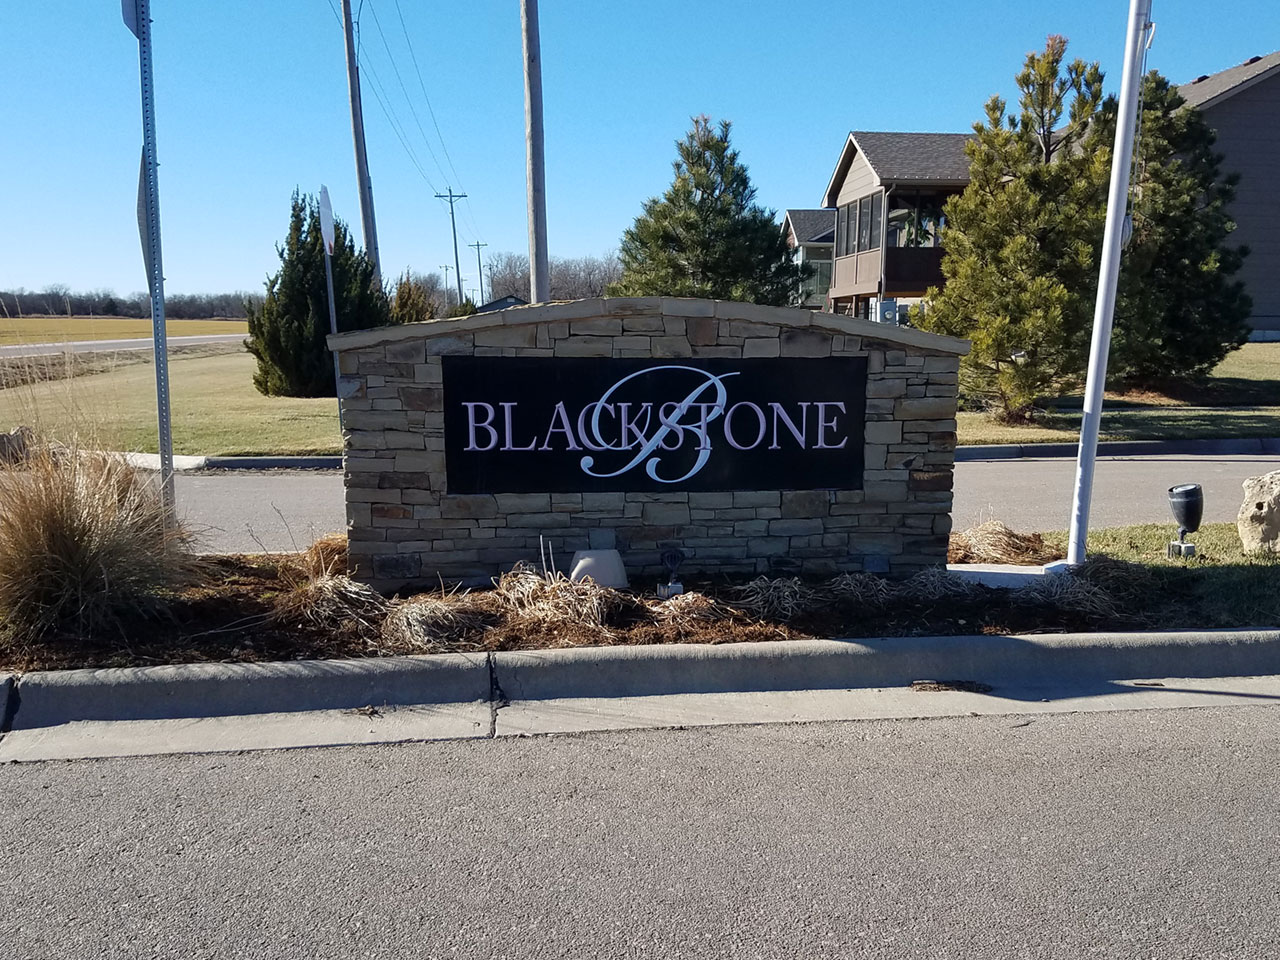 Blackstone community